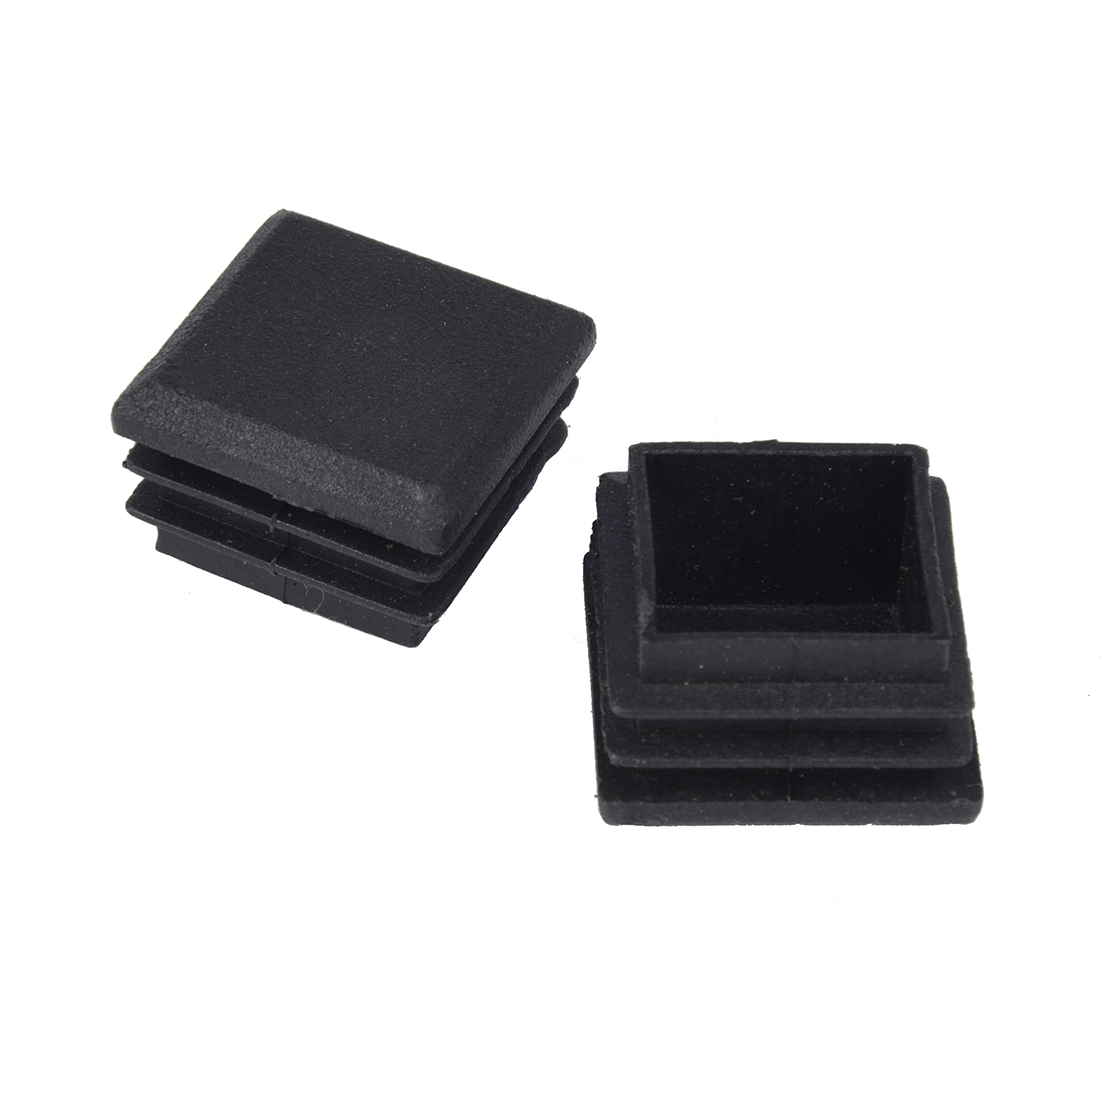 10 Pcs Black Plastic Square Tube Inserts End Blanking Cap 25mm X 25mm